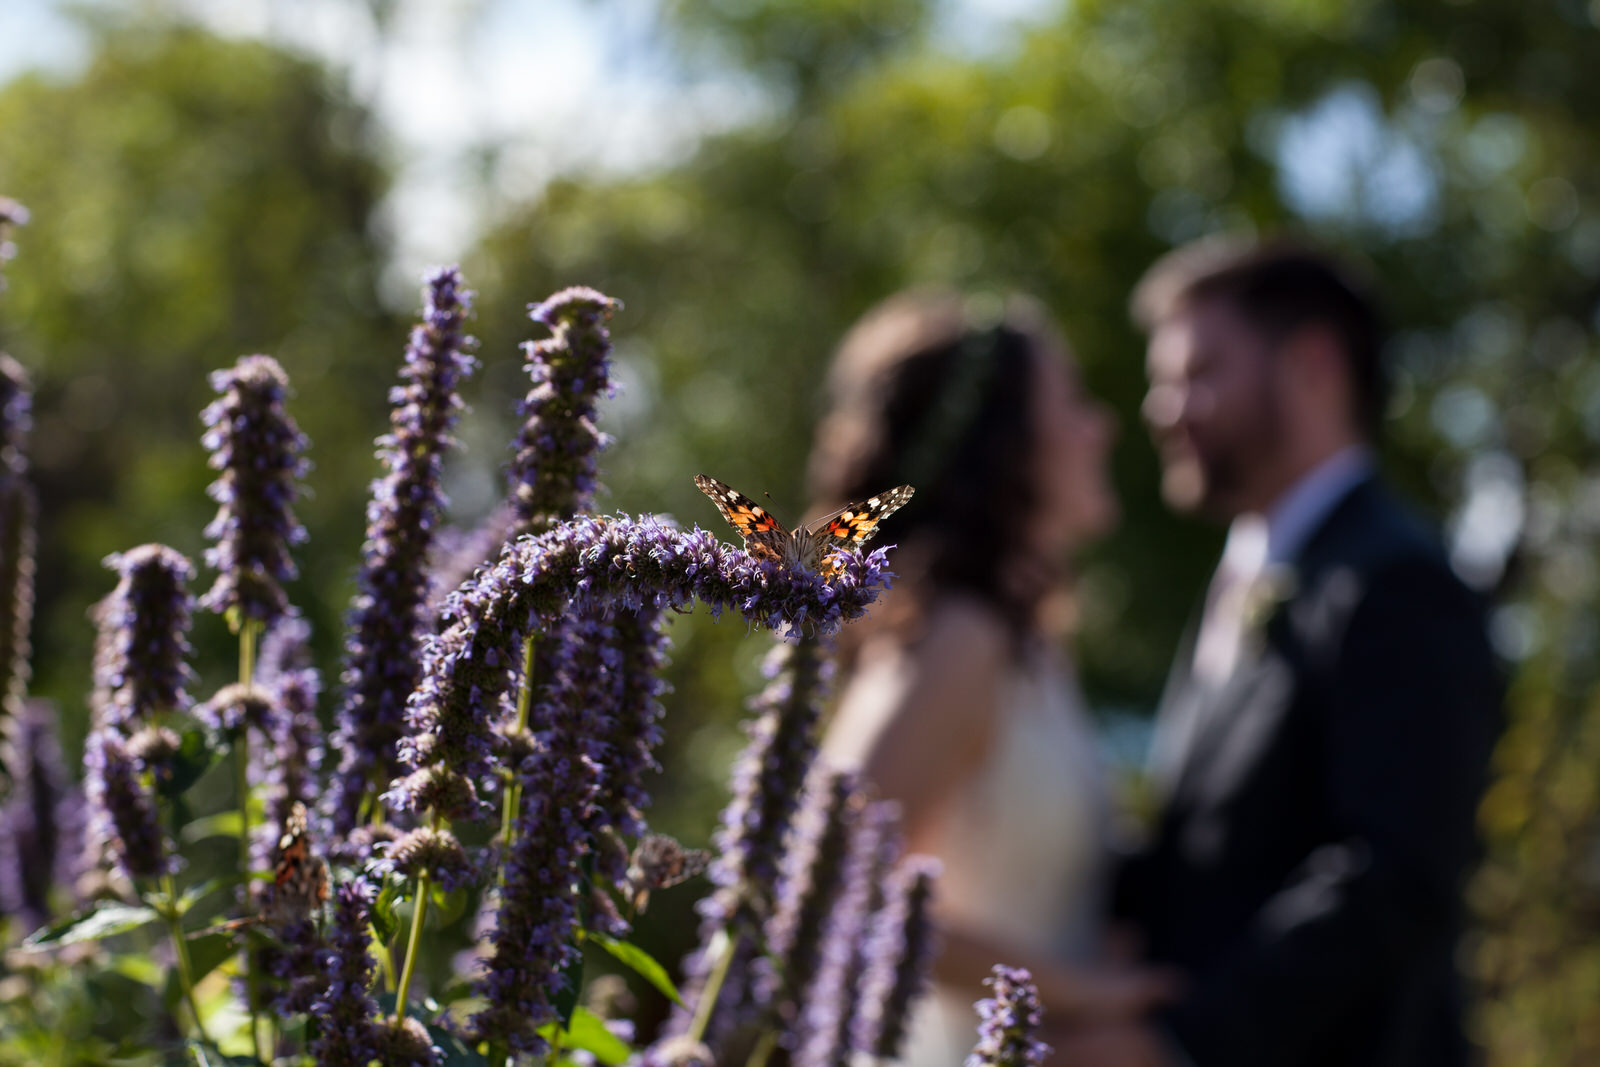 a butterfly sitting on lavender in the garden as the wedding couple is about to kiss